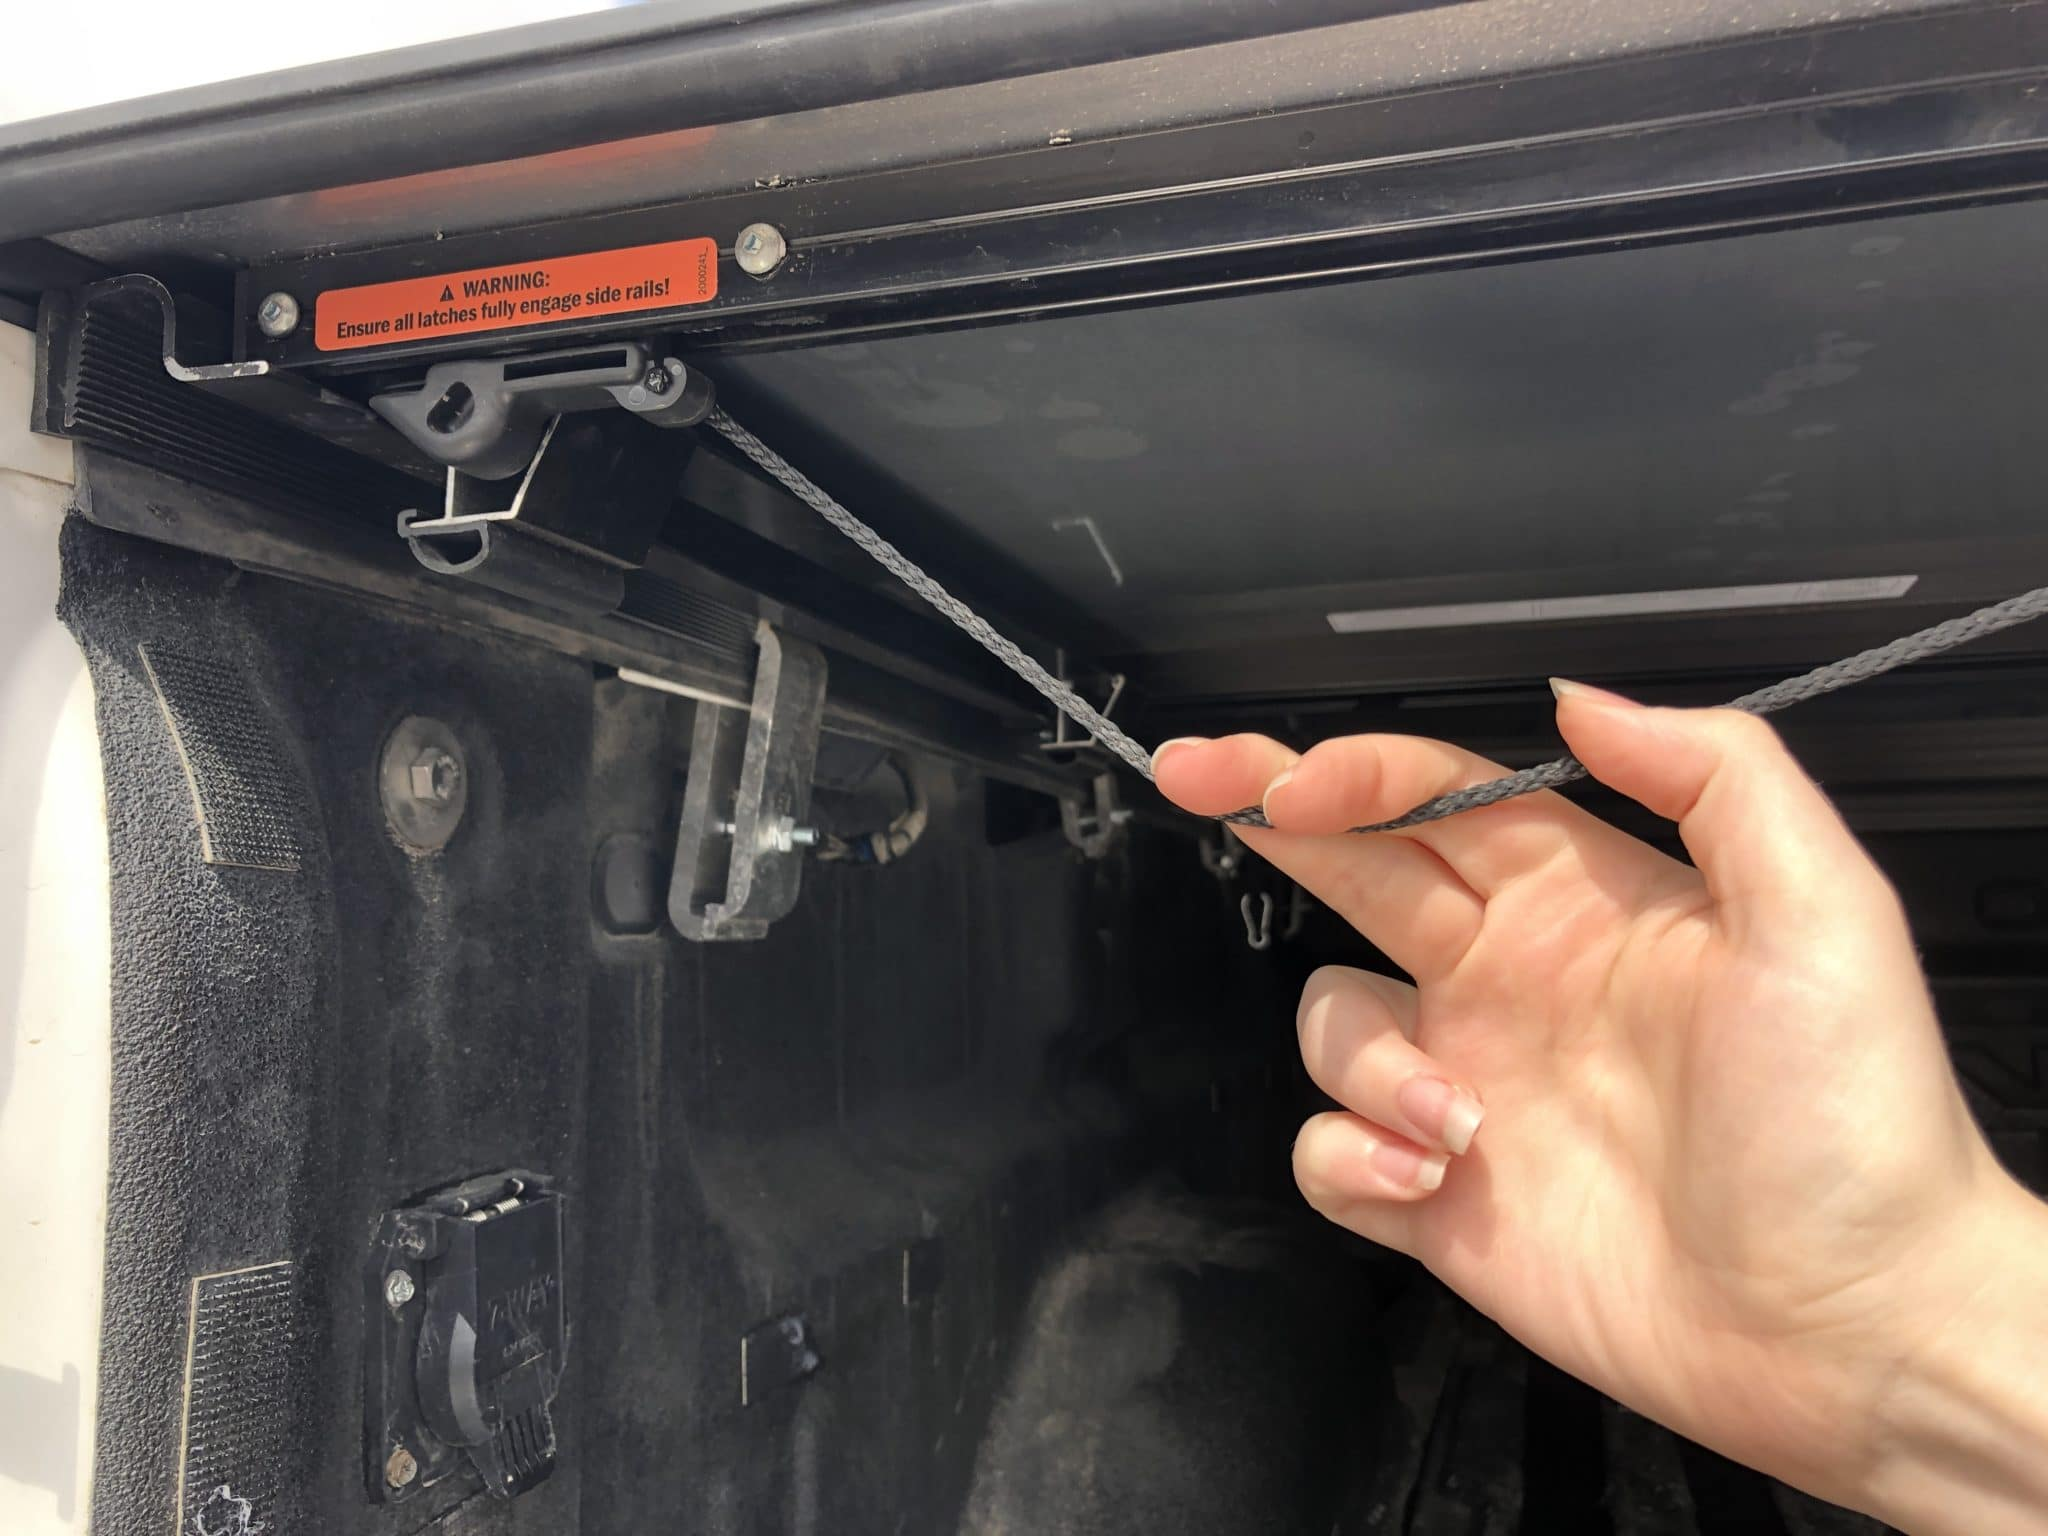 Dual Auto Latch & Release System